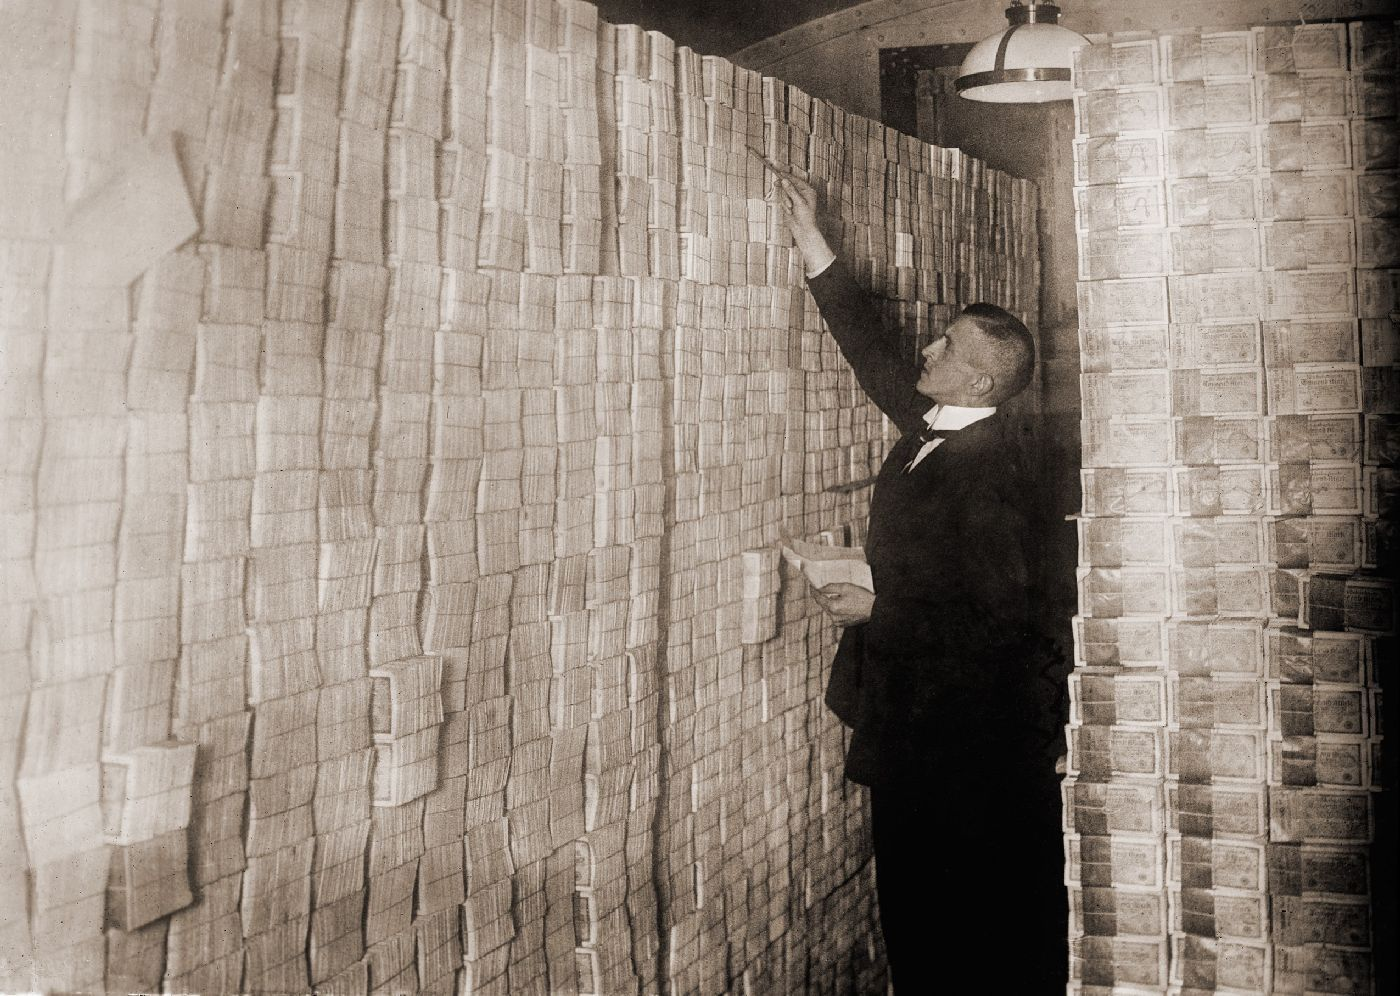 Piles of German money in a Berlin bank during post-World War I hyper-inflation